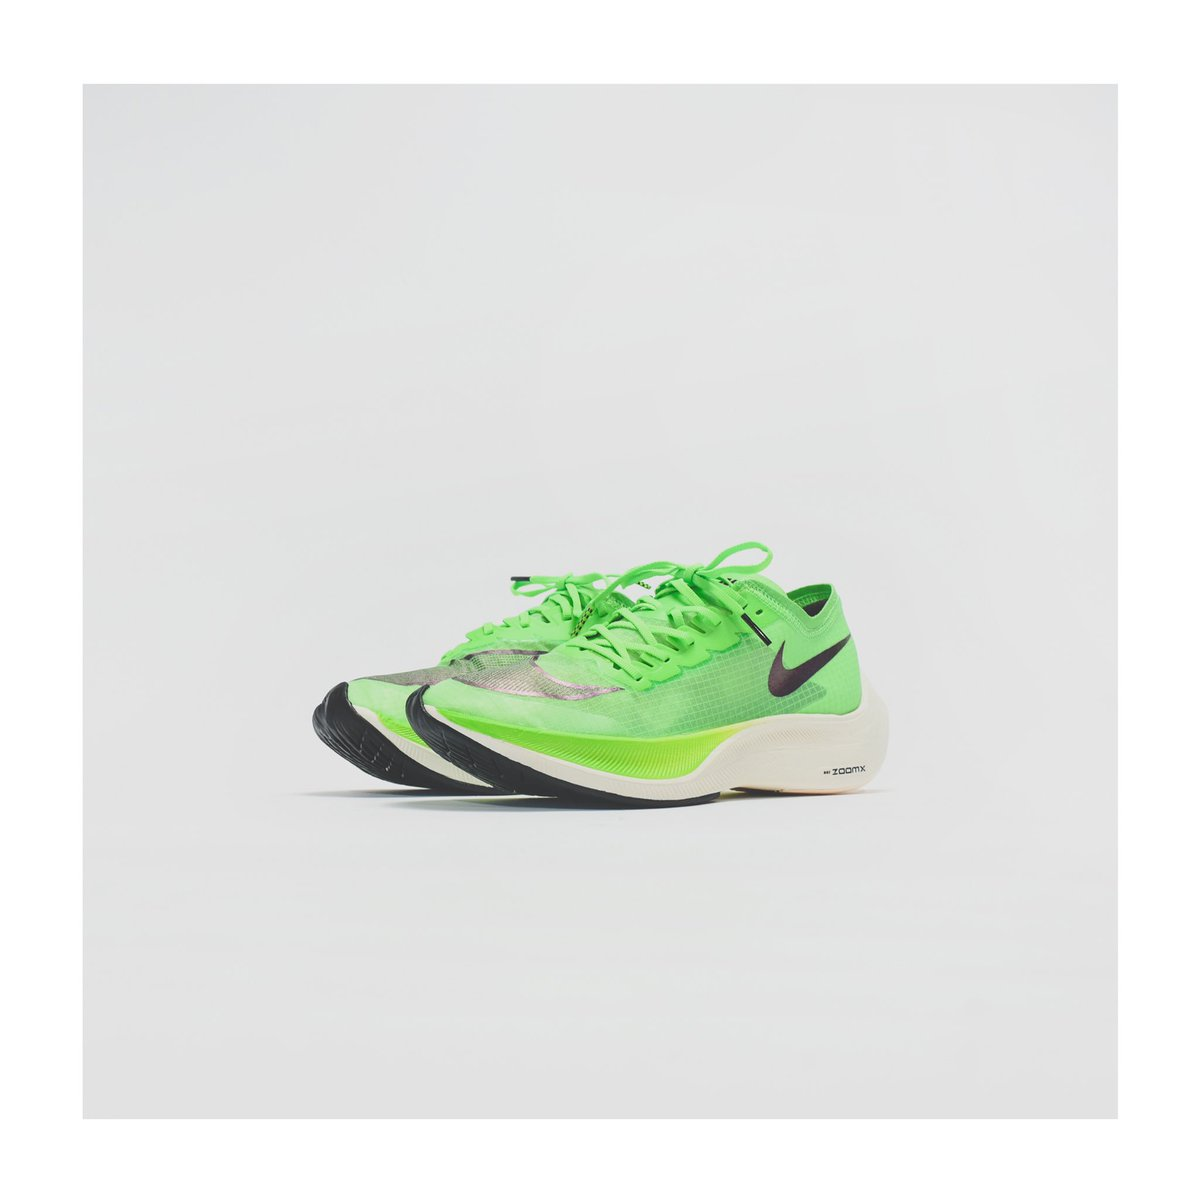 7a12275c04acb8 Nike ZoomX Vaporfly Next%. Releasing tomorrow in-store only at all Kith  shops.pic.twitter.com/hmDgzdqOo0